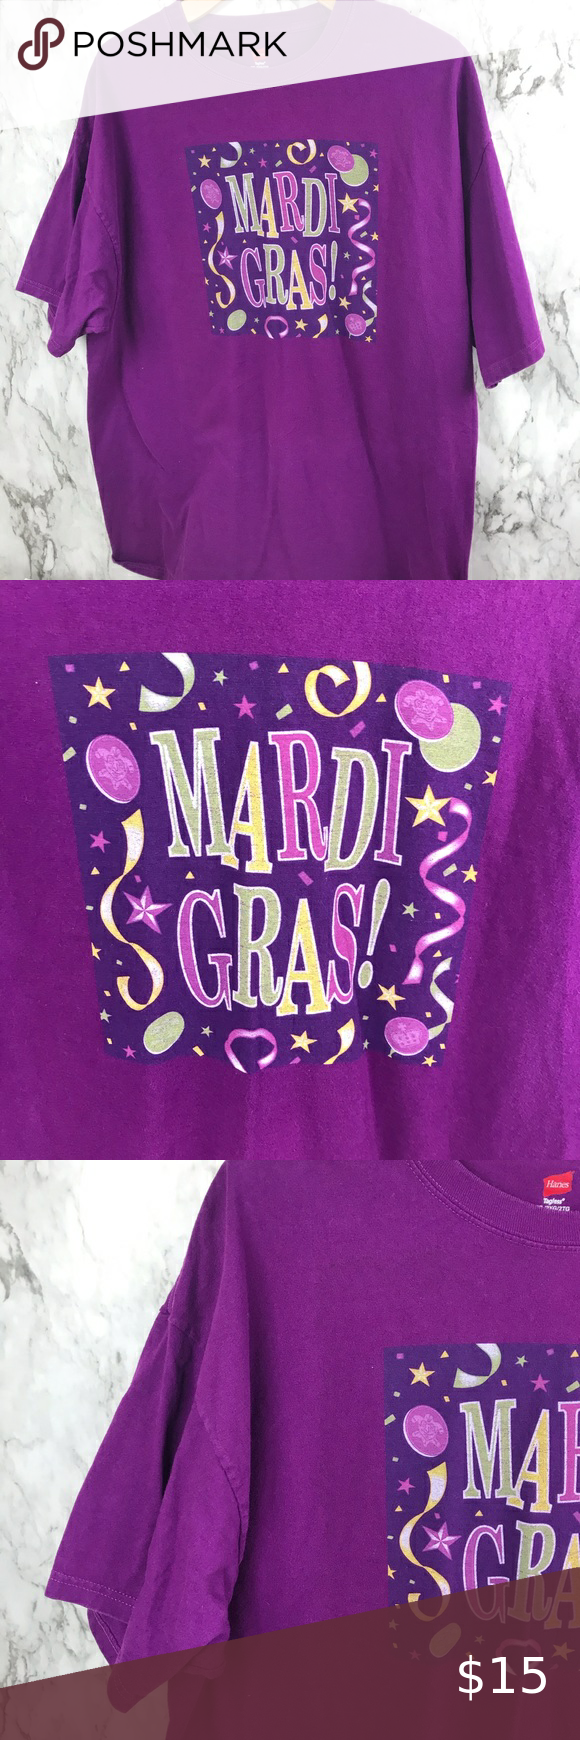 """Mardi Gras Graphic Shirt Tee Purple Size 2XL Size 2XL Pit to pit 24"""" Length is 29"""" #010 Hanes Tops Tees - Short Sleeve"""